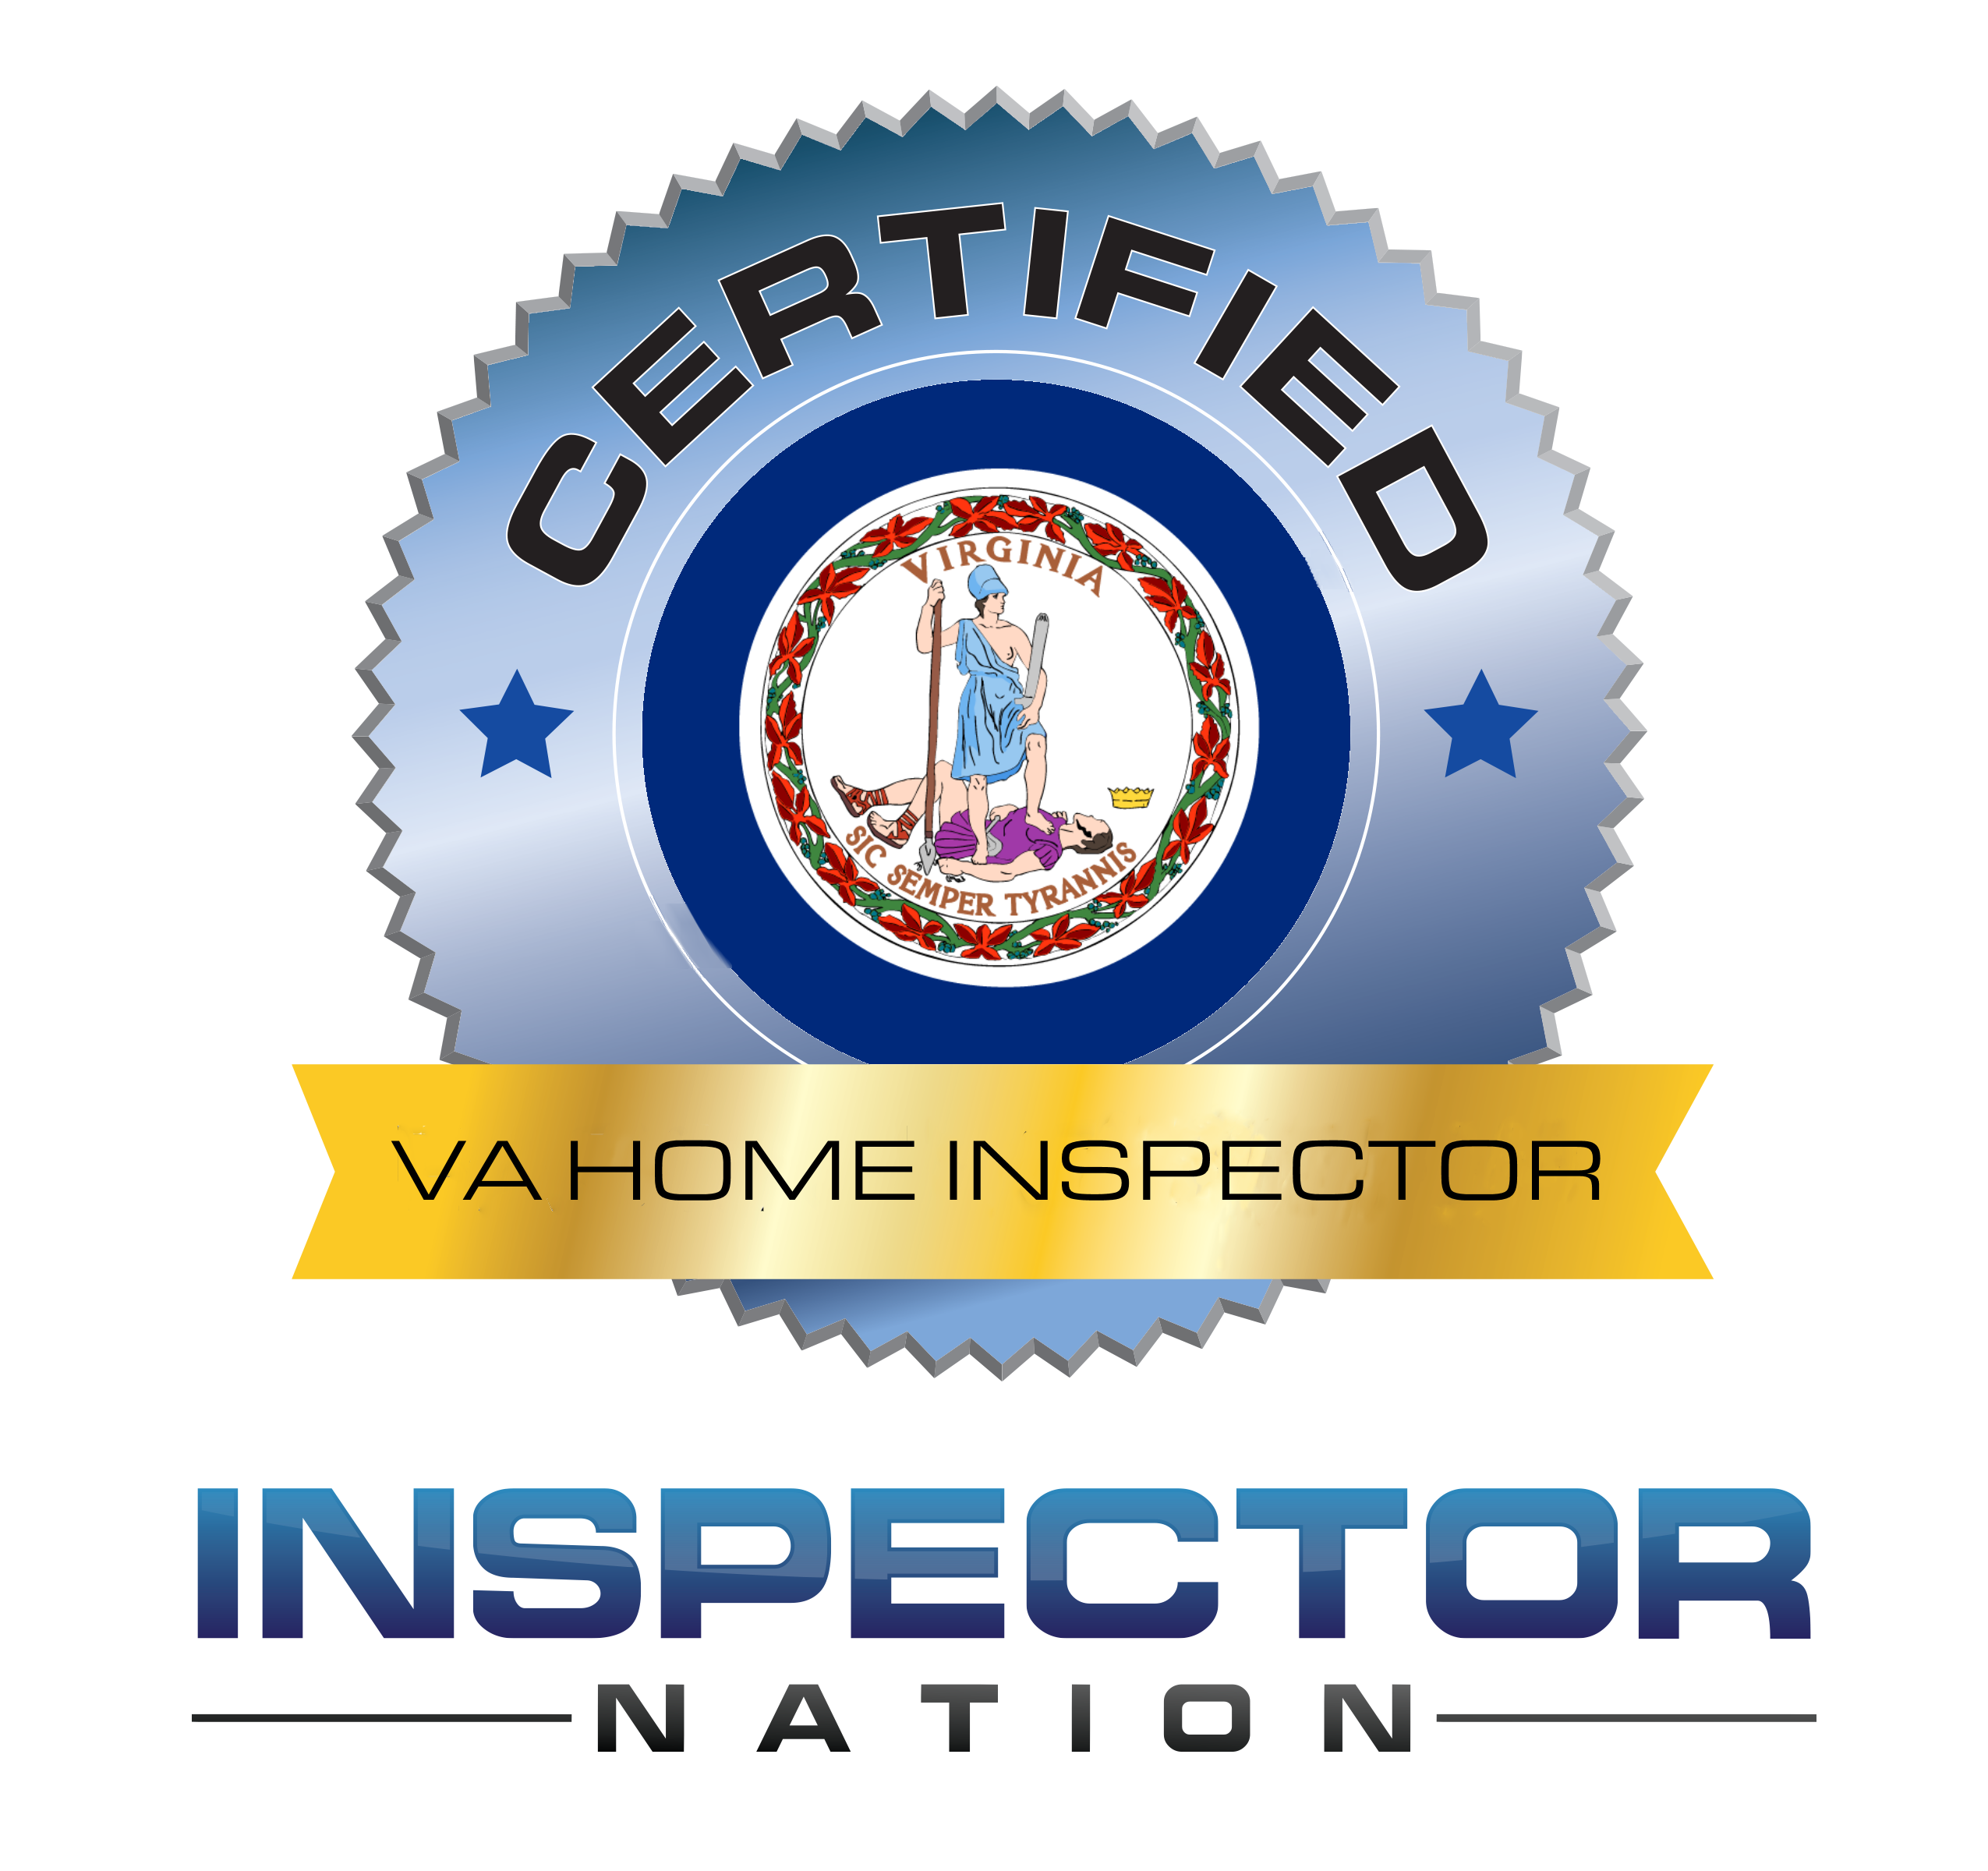 inspector nation certified home inspector badge virginia va